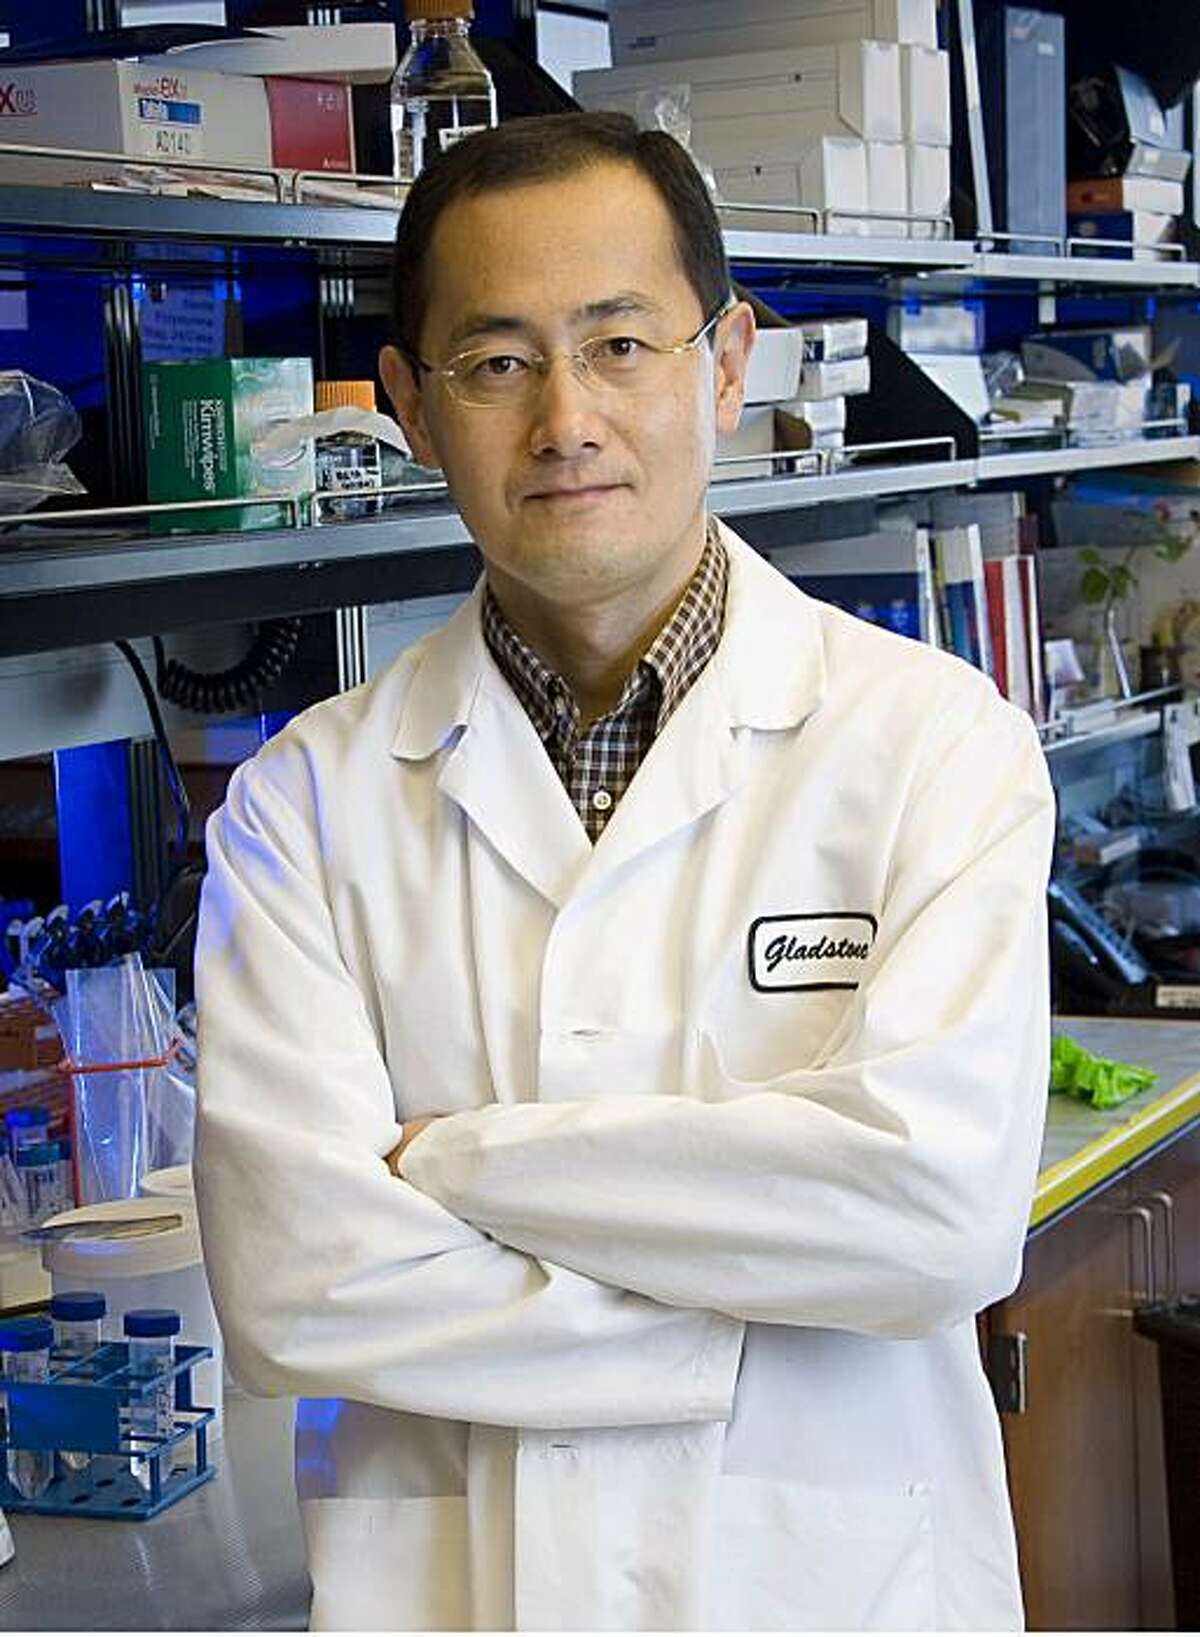 Shinya YamanakaDr. Shinya Yamanaka, the fames Gladstone Institutes stem cell researcher who discovered how to turn skin cells into stem cells that can morph into all kinds of other cells wins $550,000 Kyoto Prize.